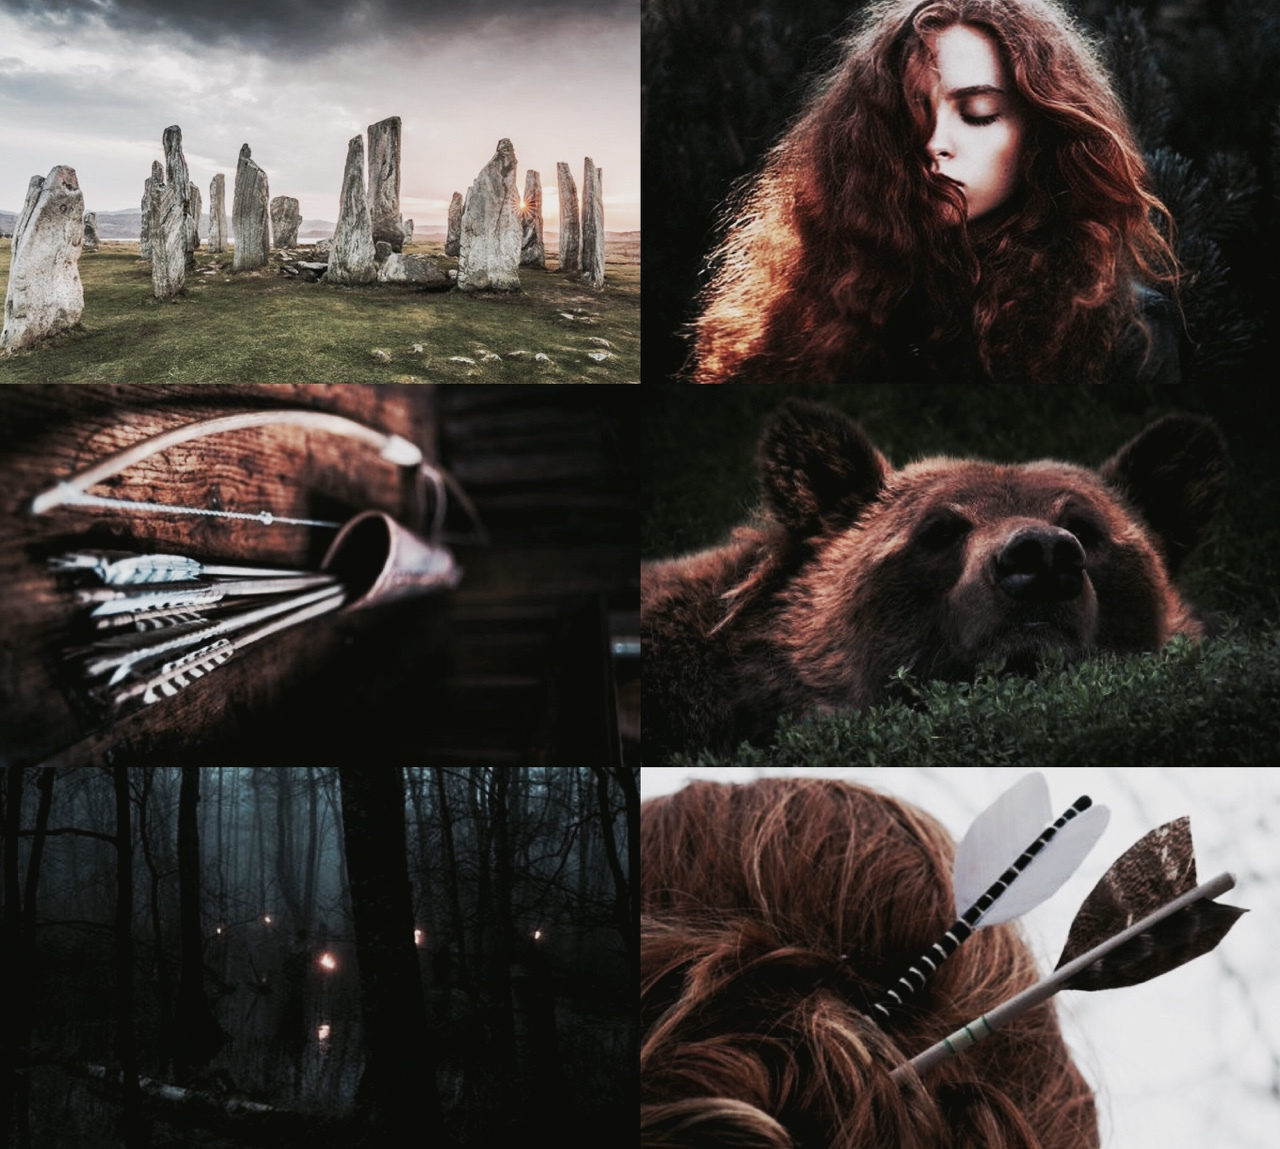 aesthetic, archery, arrow, bear, bow